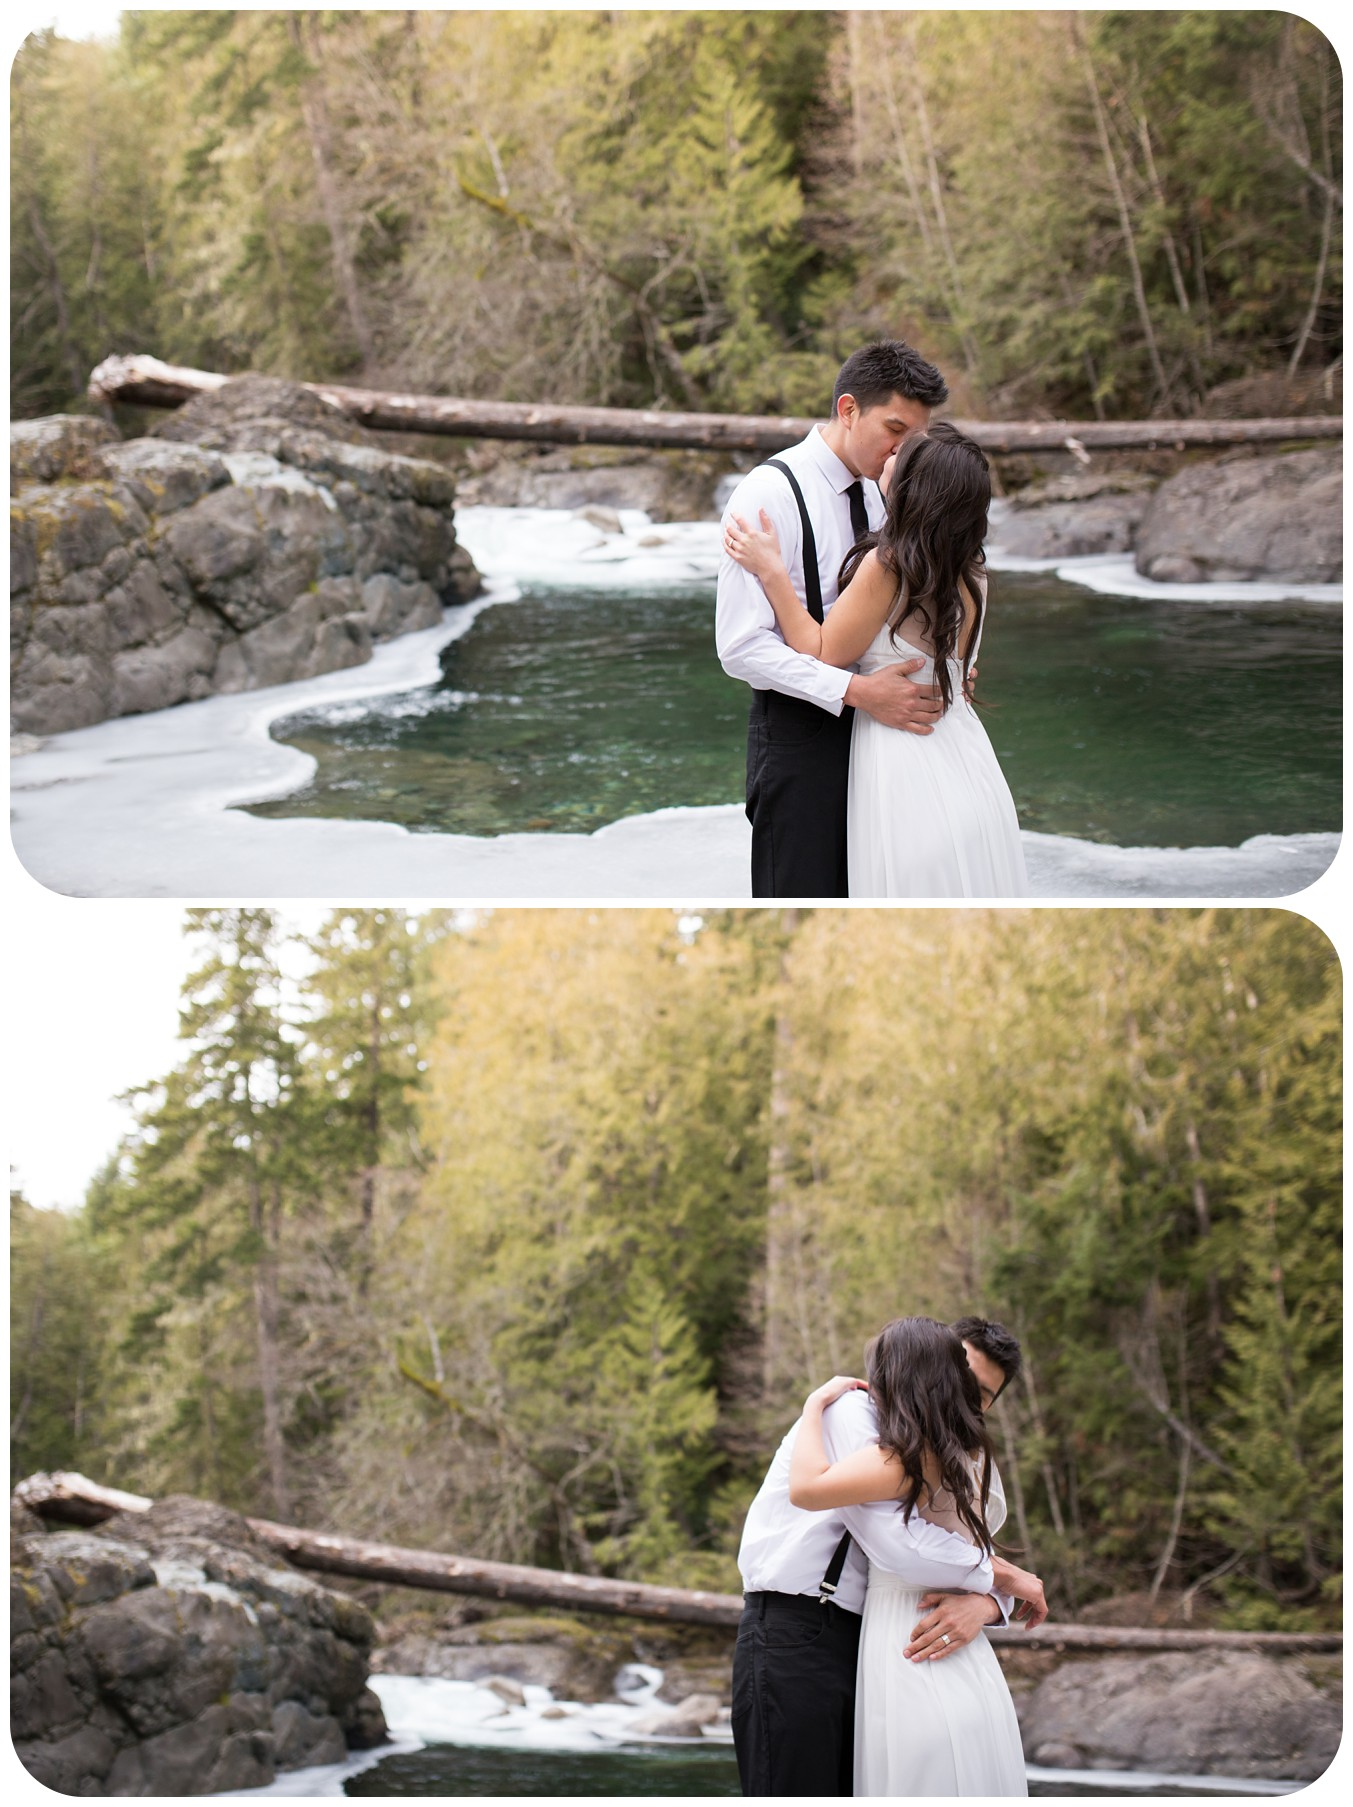 first kiss as bride and groom, riverside elopement photos, romantic elopement photos, vancouver island elopement photographer